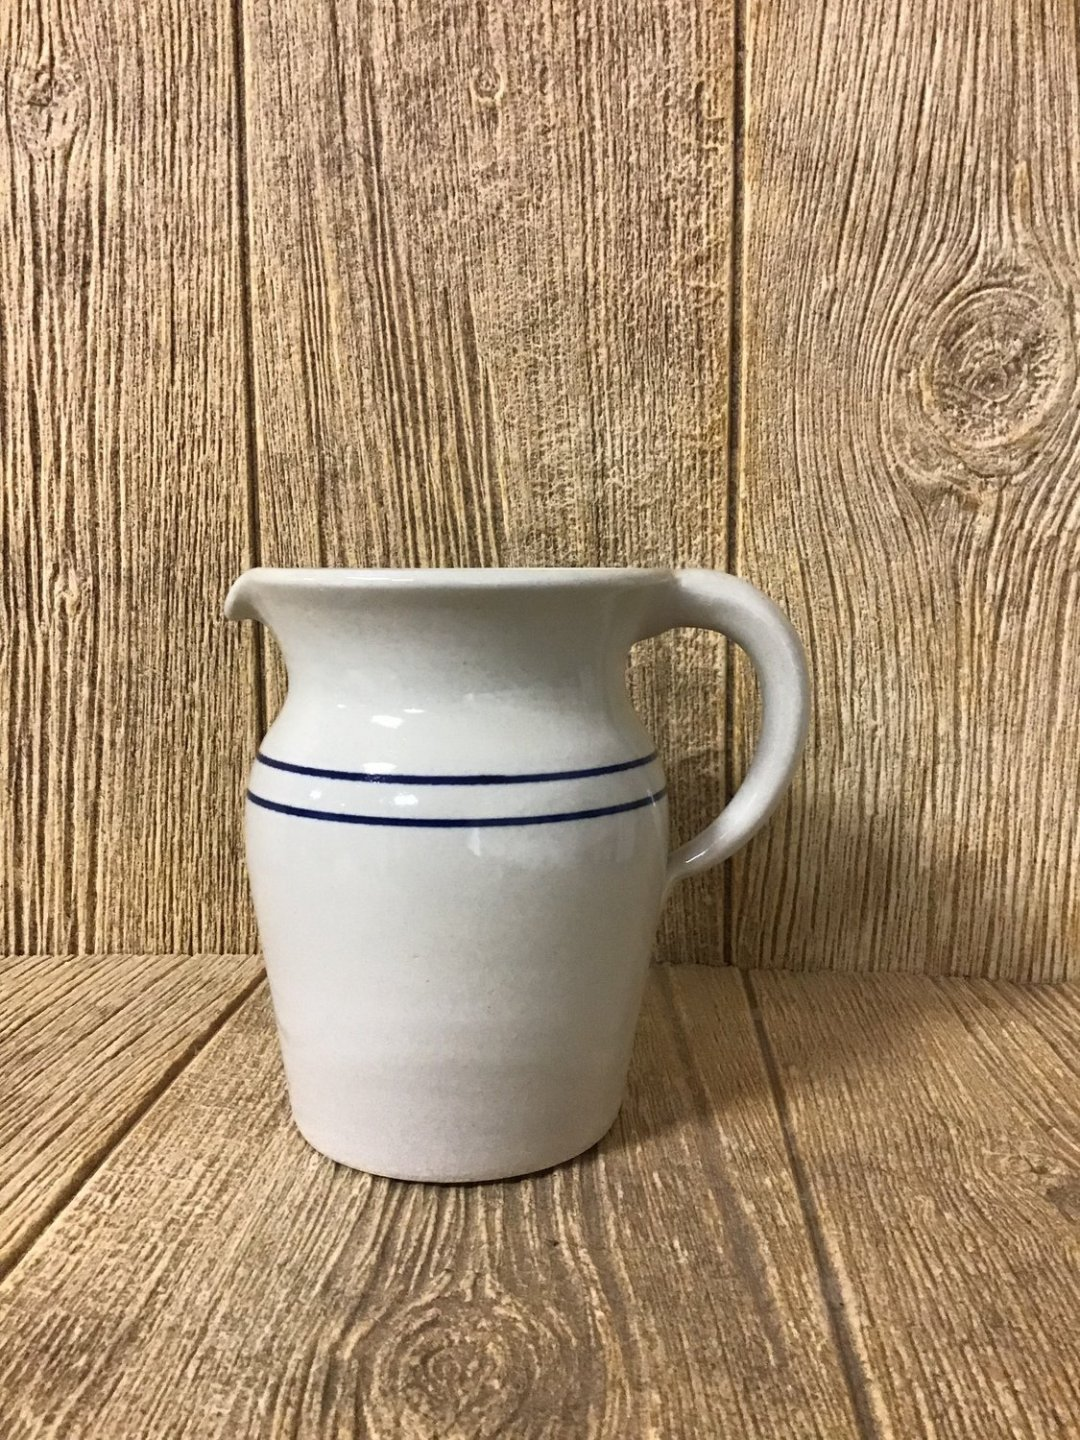 1/2 Gallon belly pitcher